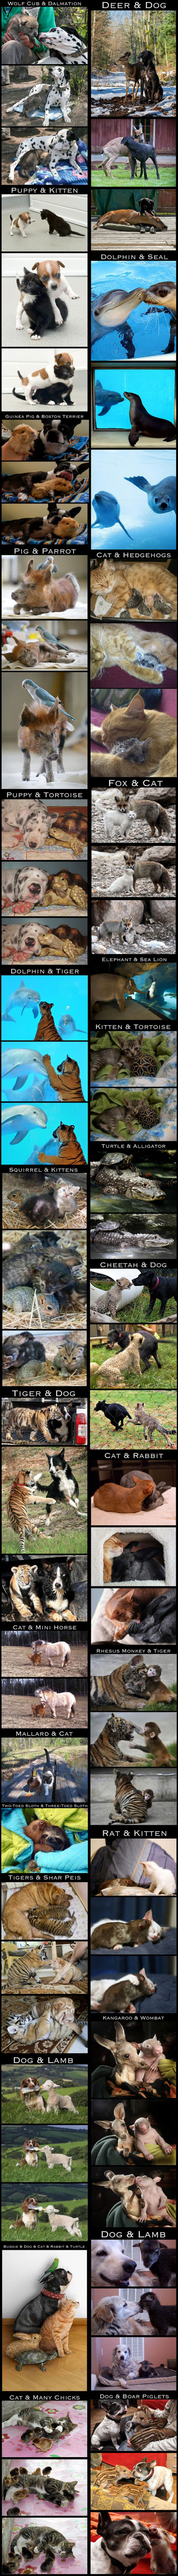 animal, friend, friendship, cat, dog, seal, dolphin, wolf, otter, turtle, fox, long